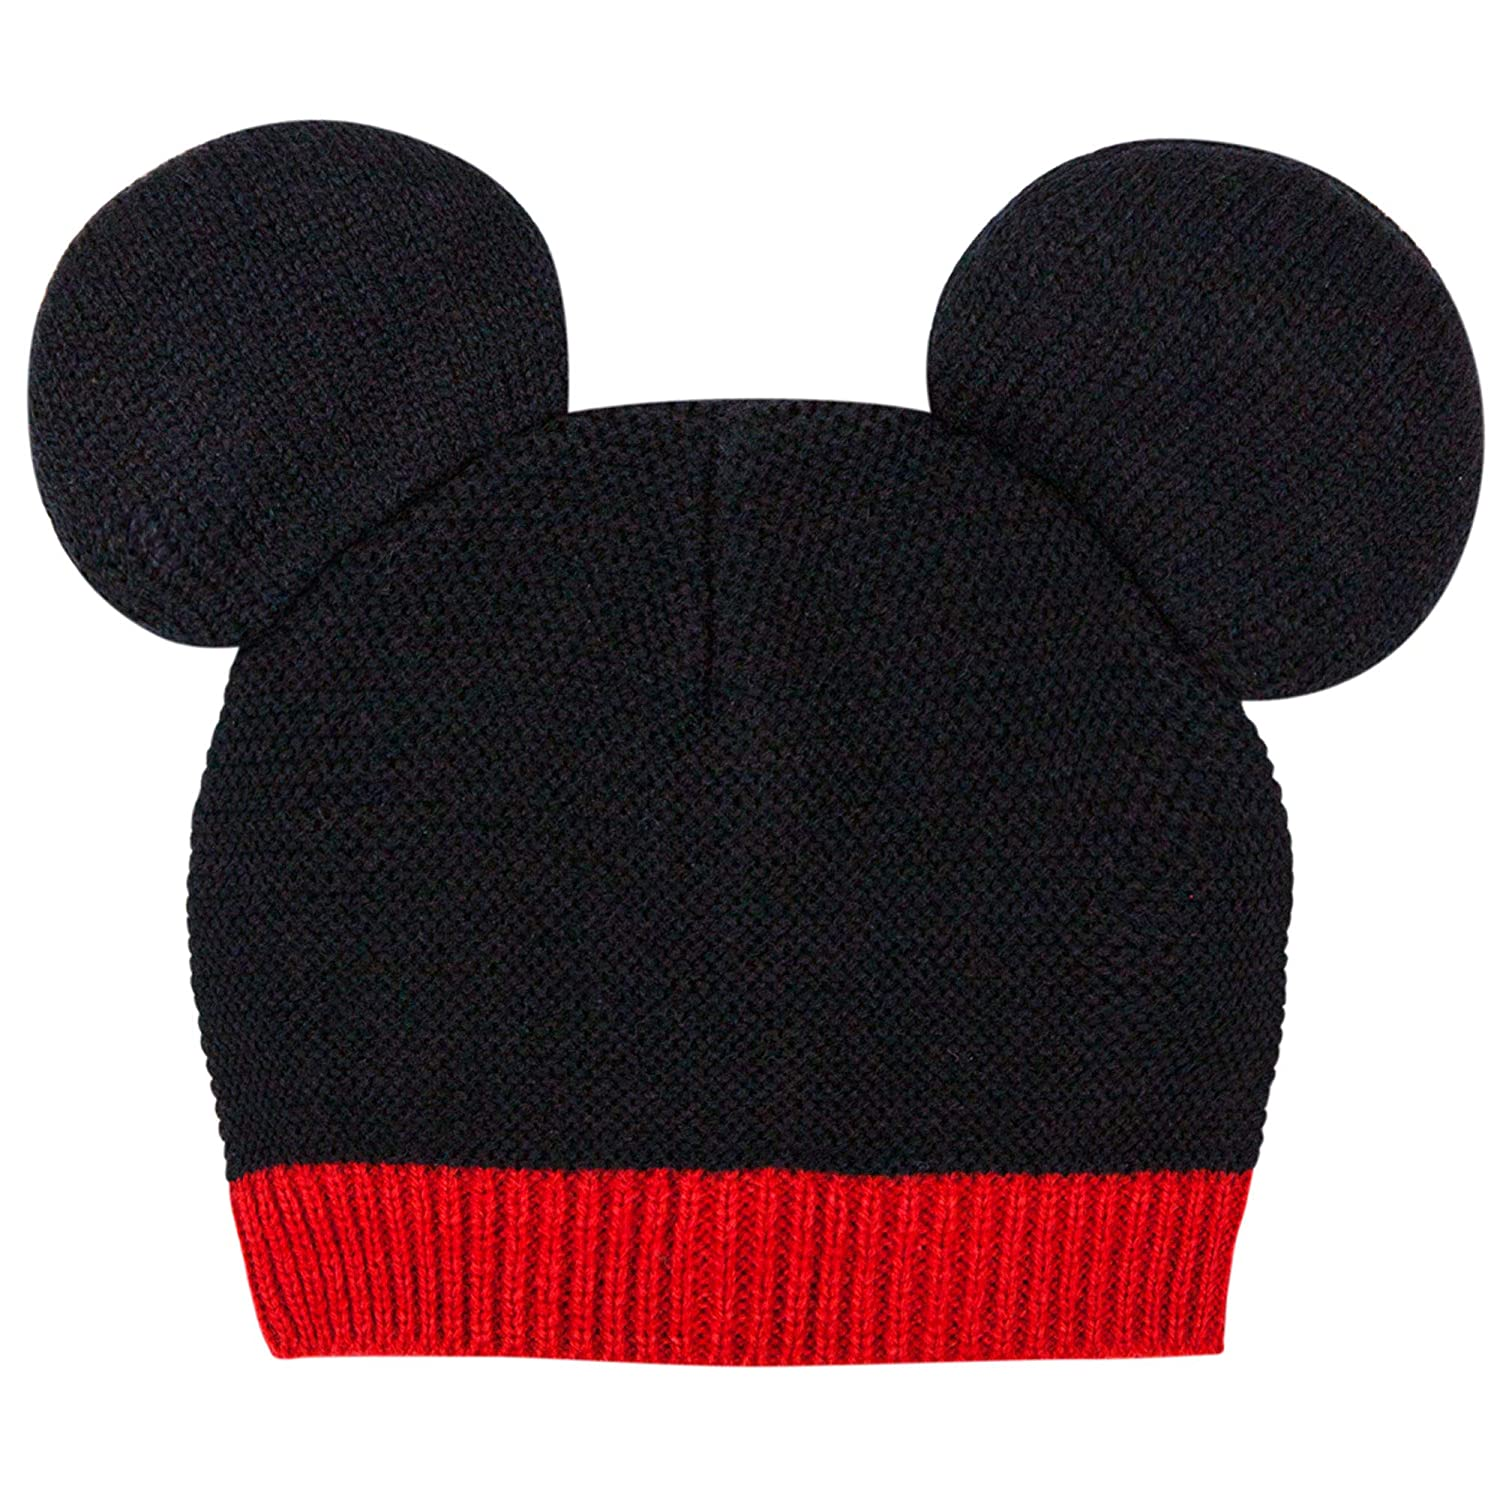 1e7e0532cfaeac Amazon.com: Disney Baby Mickey Mouse Ears Knit Beanie Hat 0-12 Moths Black  Red: Baby